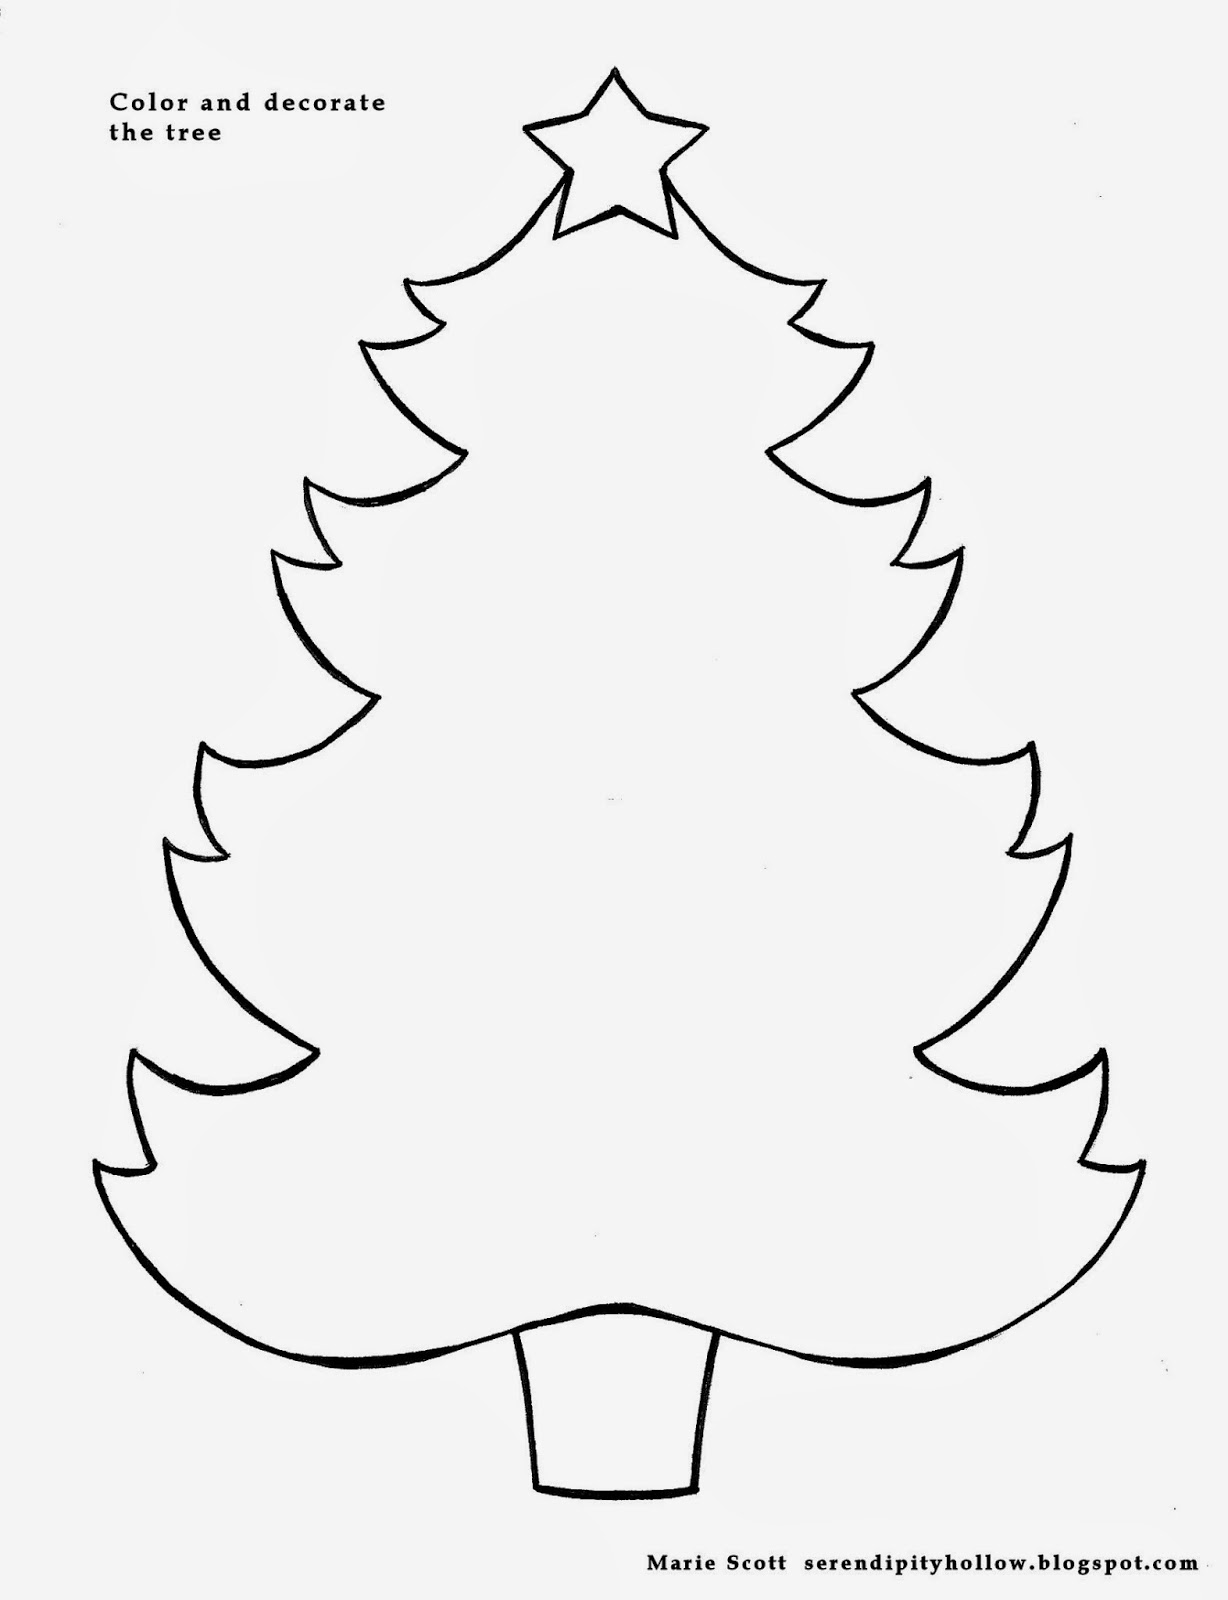 Serendipity Hollow: O Christmas Tree! (to decorate and color)